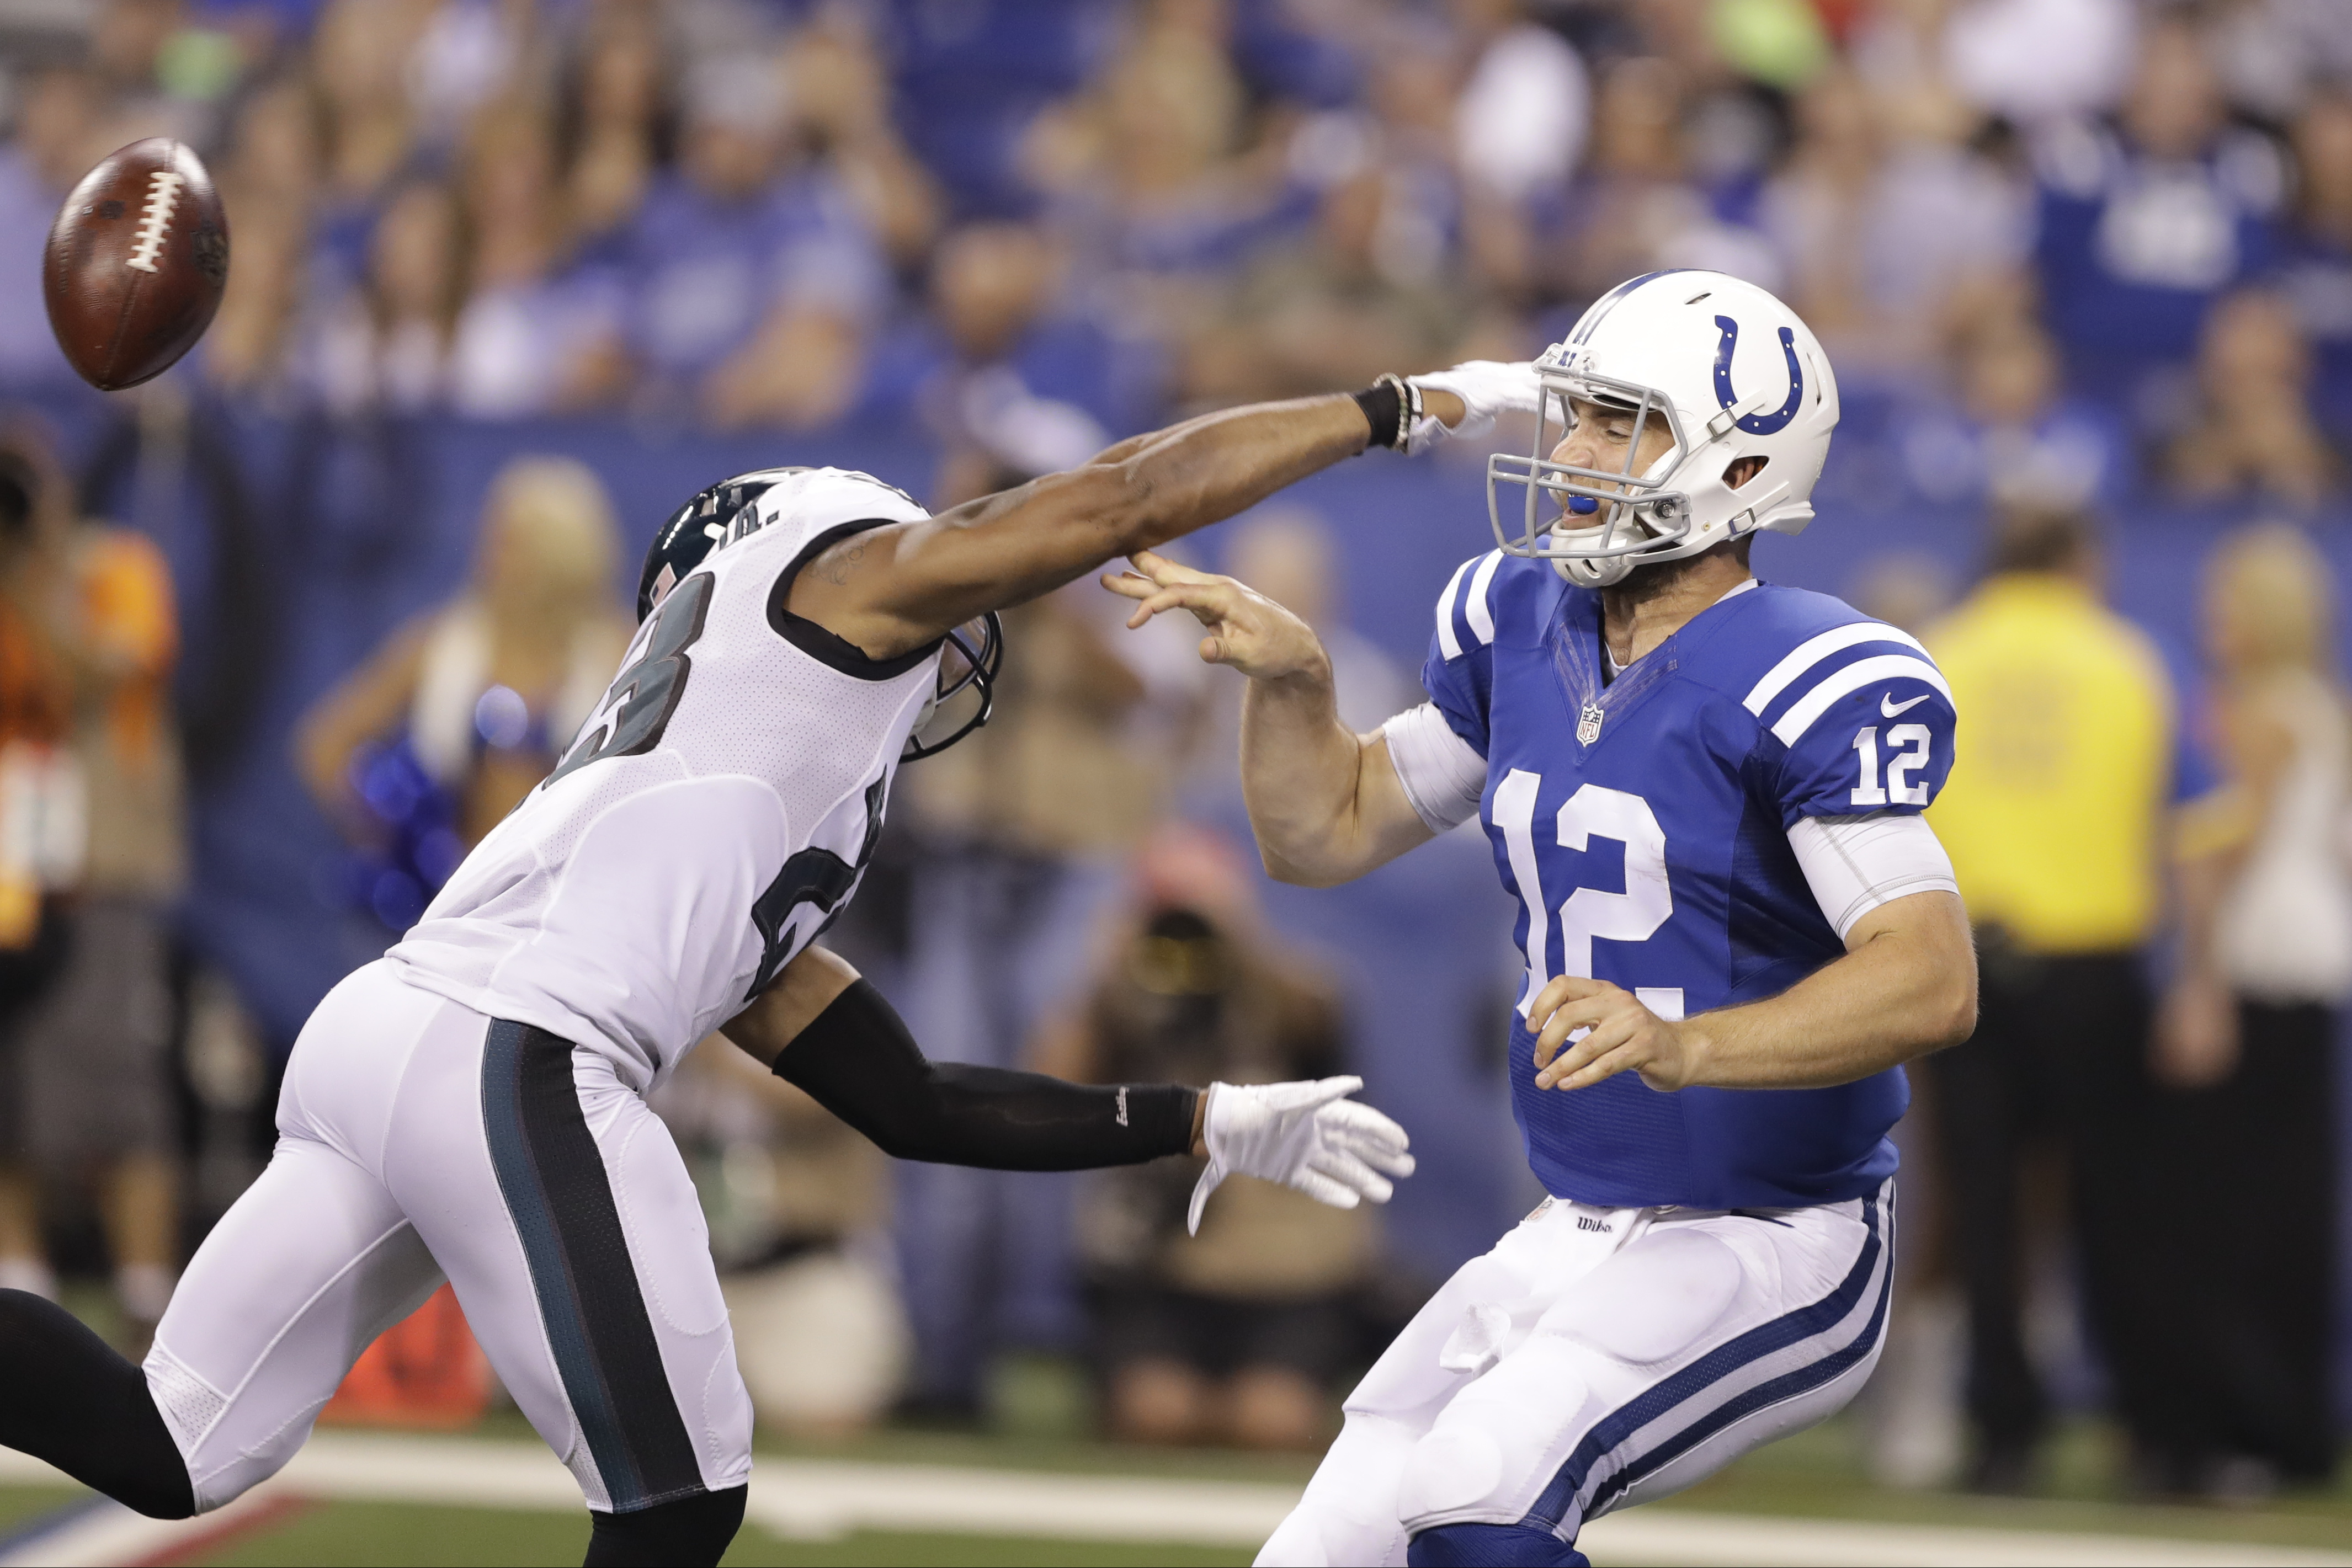 FILE - In this Aug. 27, 2016, file photo, Philadelphia Eagles defensive back Rodney McLeod (23) chases Indianapolis Colts quarterback Andrew Luck (12) during the first half of an NFL preseason football game in Indianapolis. Luck is healthy, and the Colts